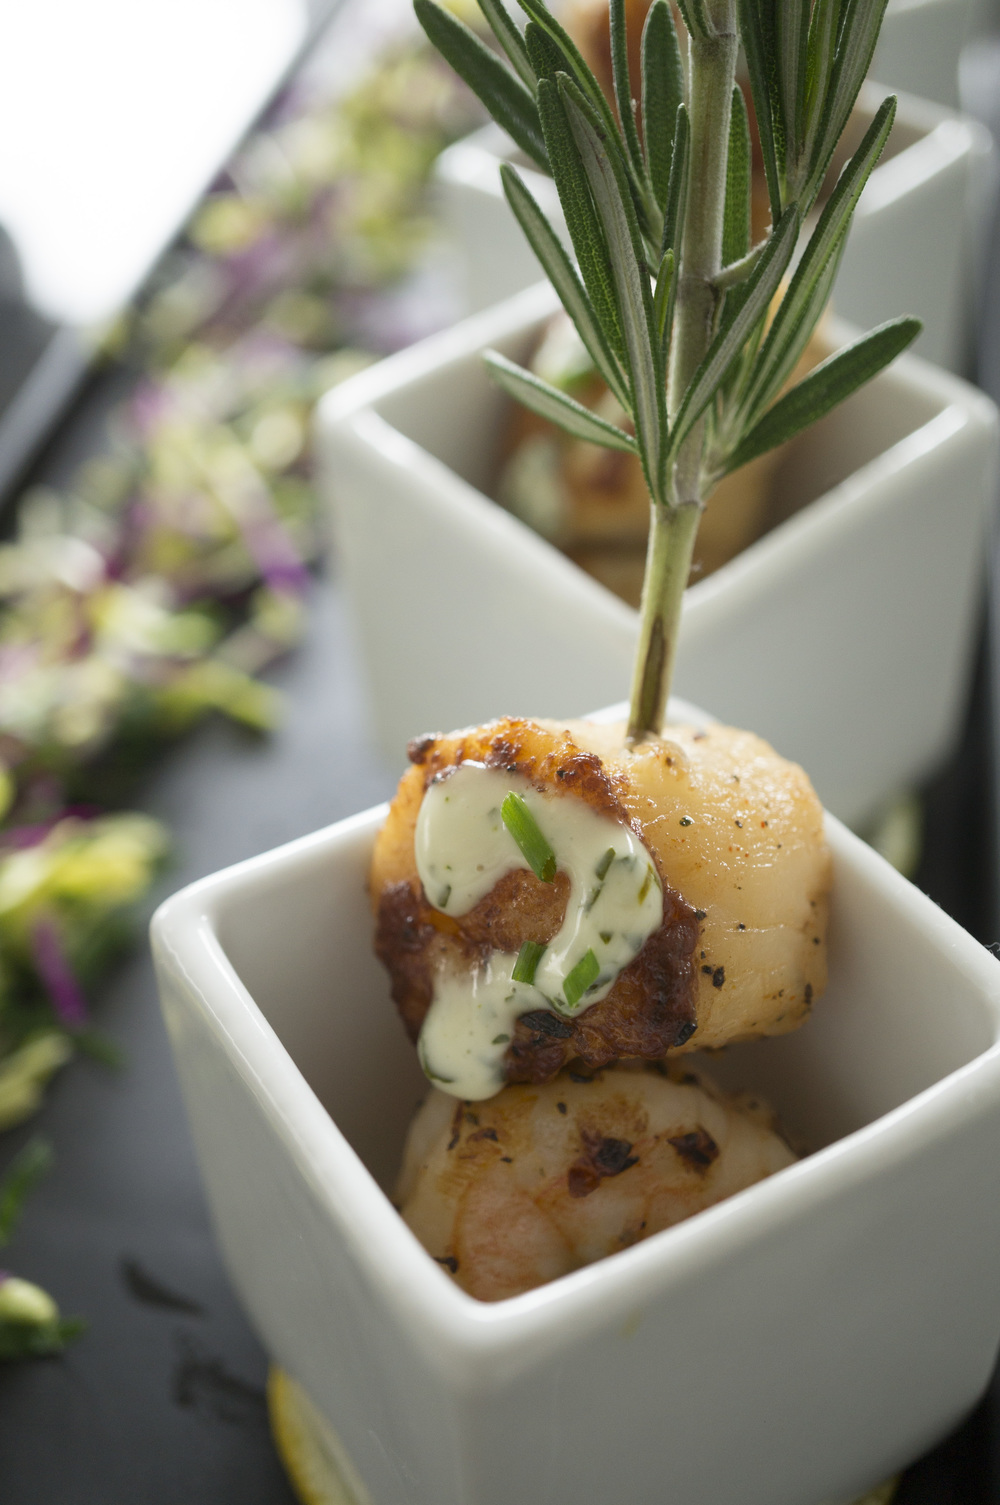 Seared Diver Scallop and Jumbo Shrimp on a Rosemary Sprig with Cilantro Aioli 9648.jpg